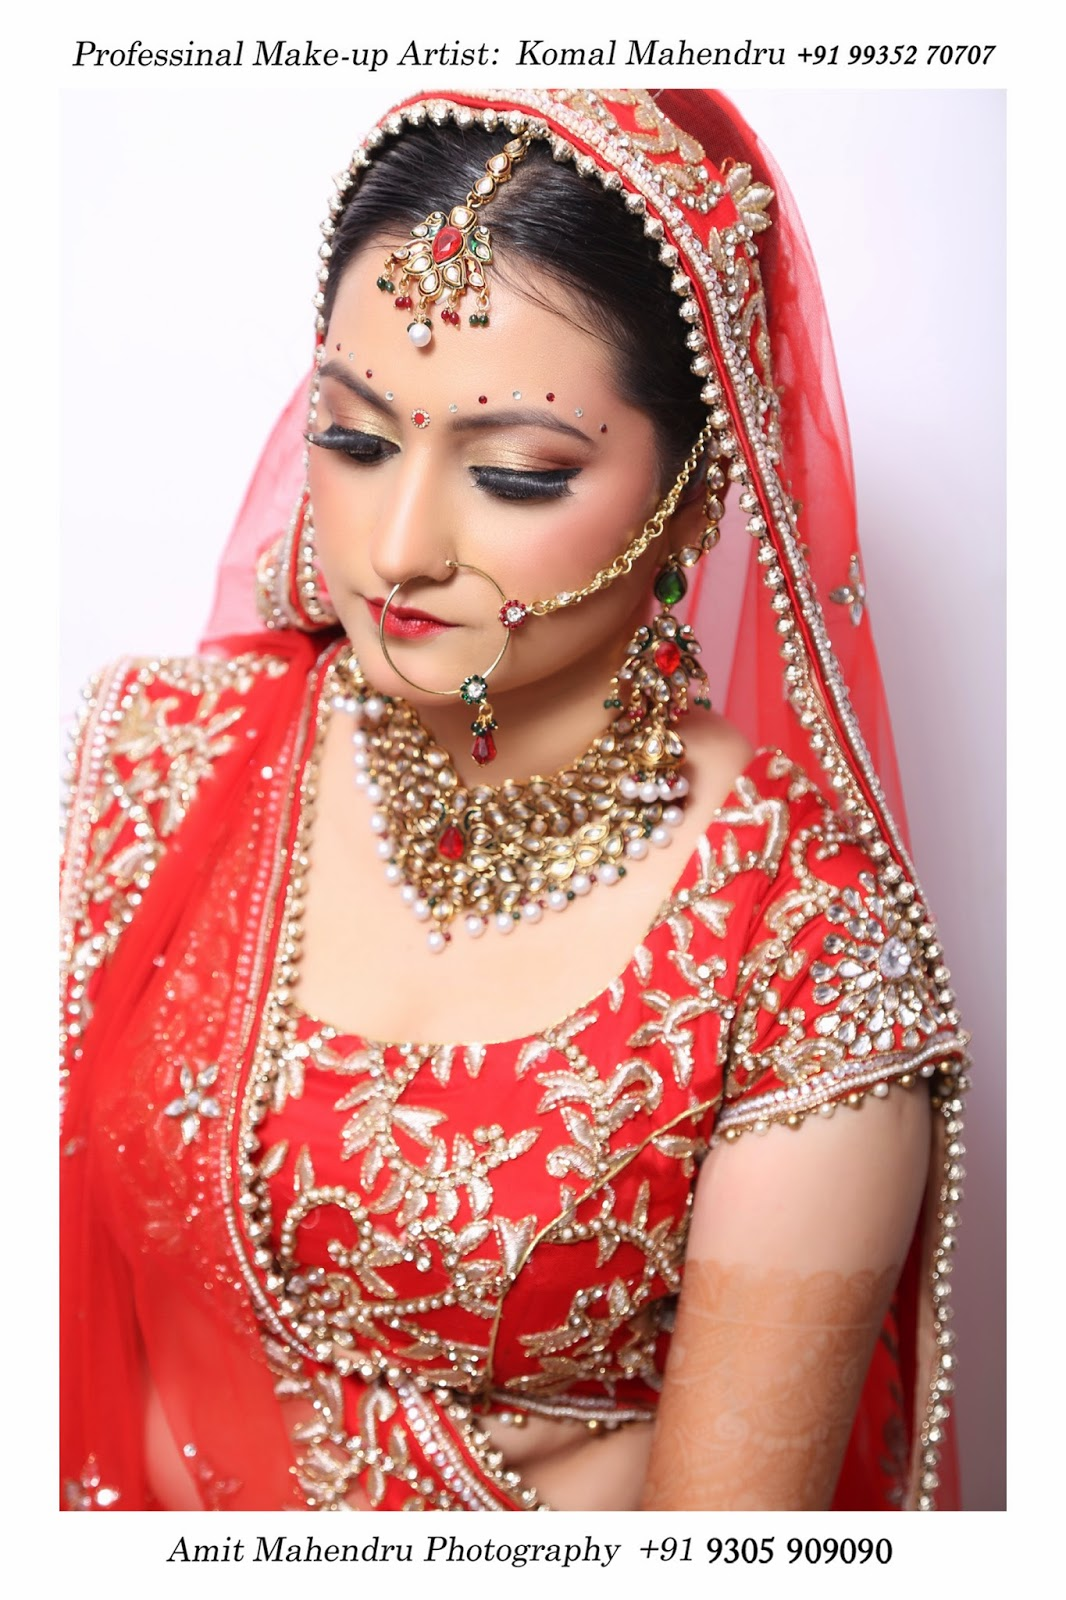 Komal mahendru s professional makeup lucknow india bridal makeup - Professional Bridal Makeup Artist In Lucknow